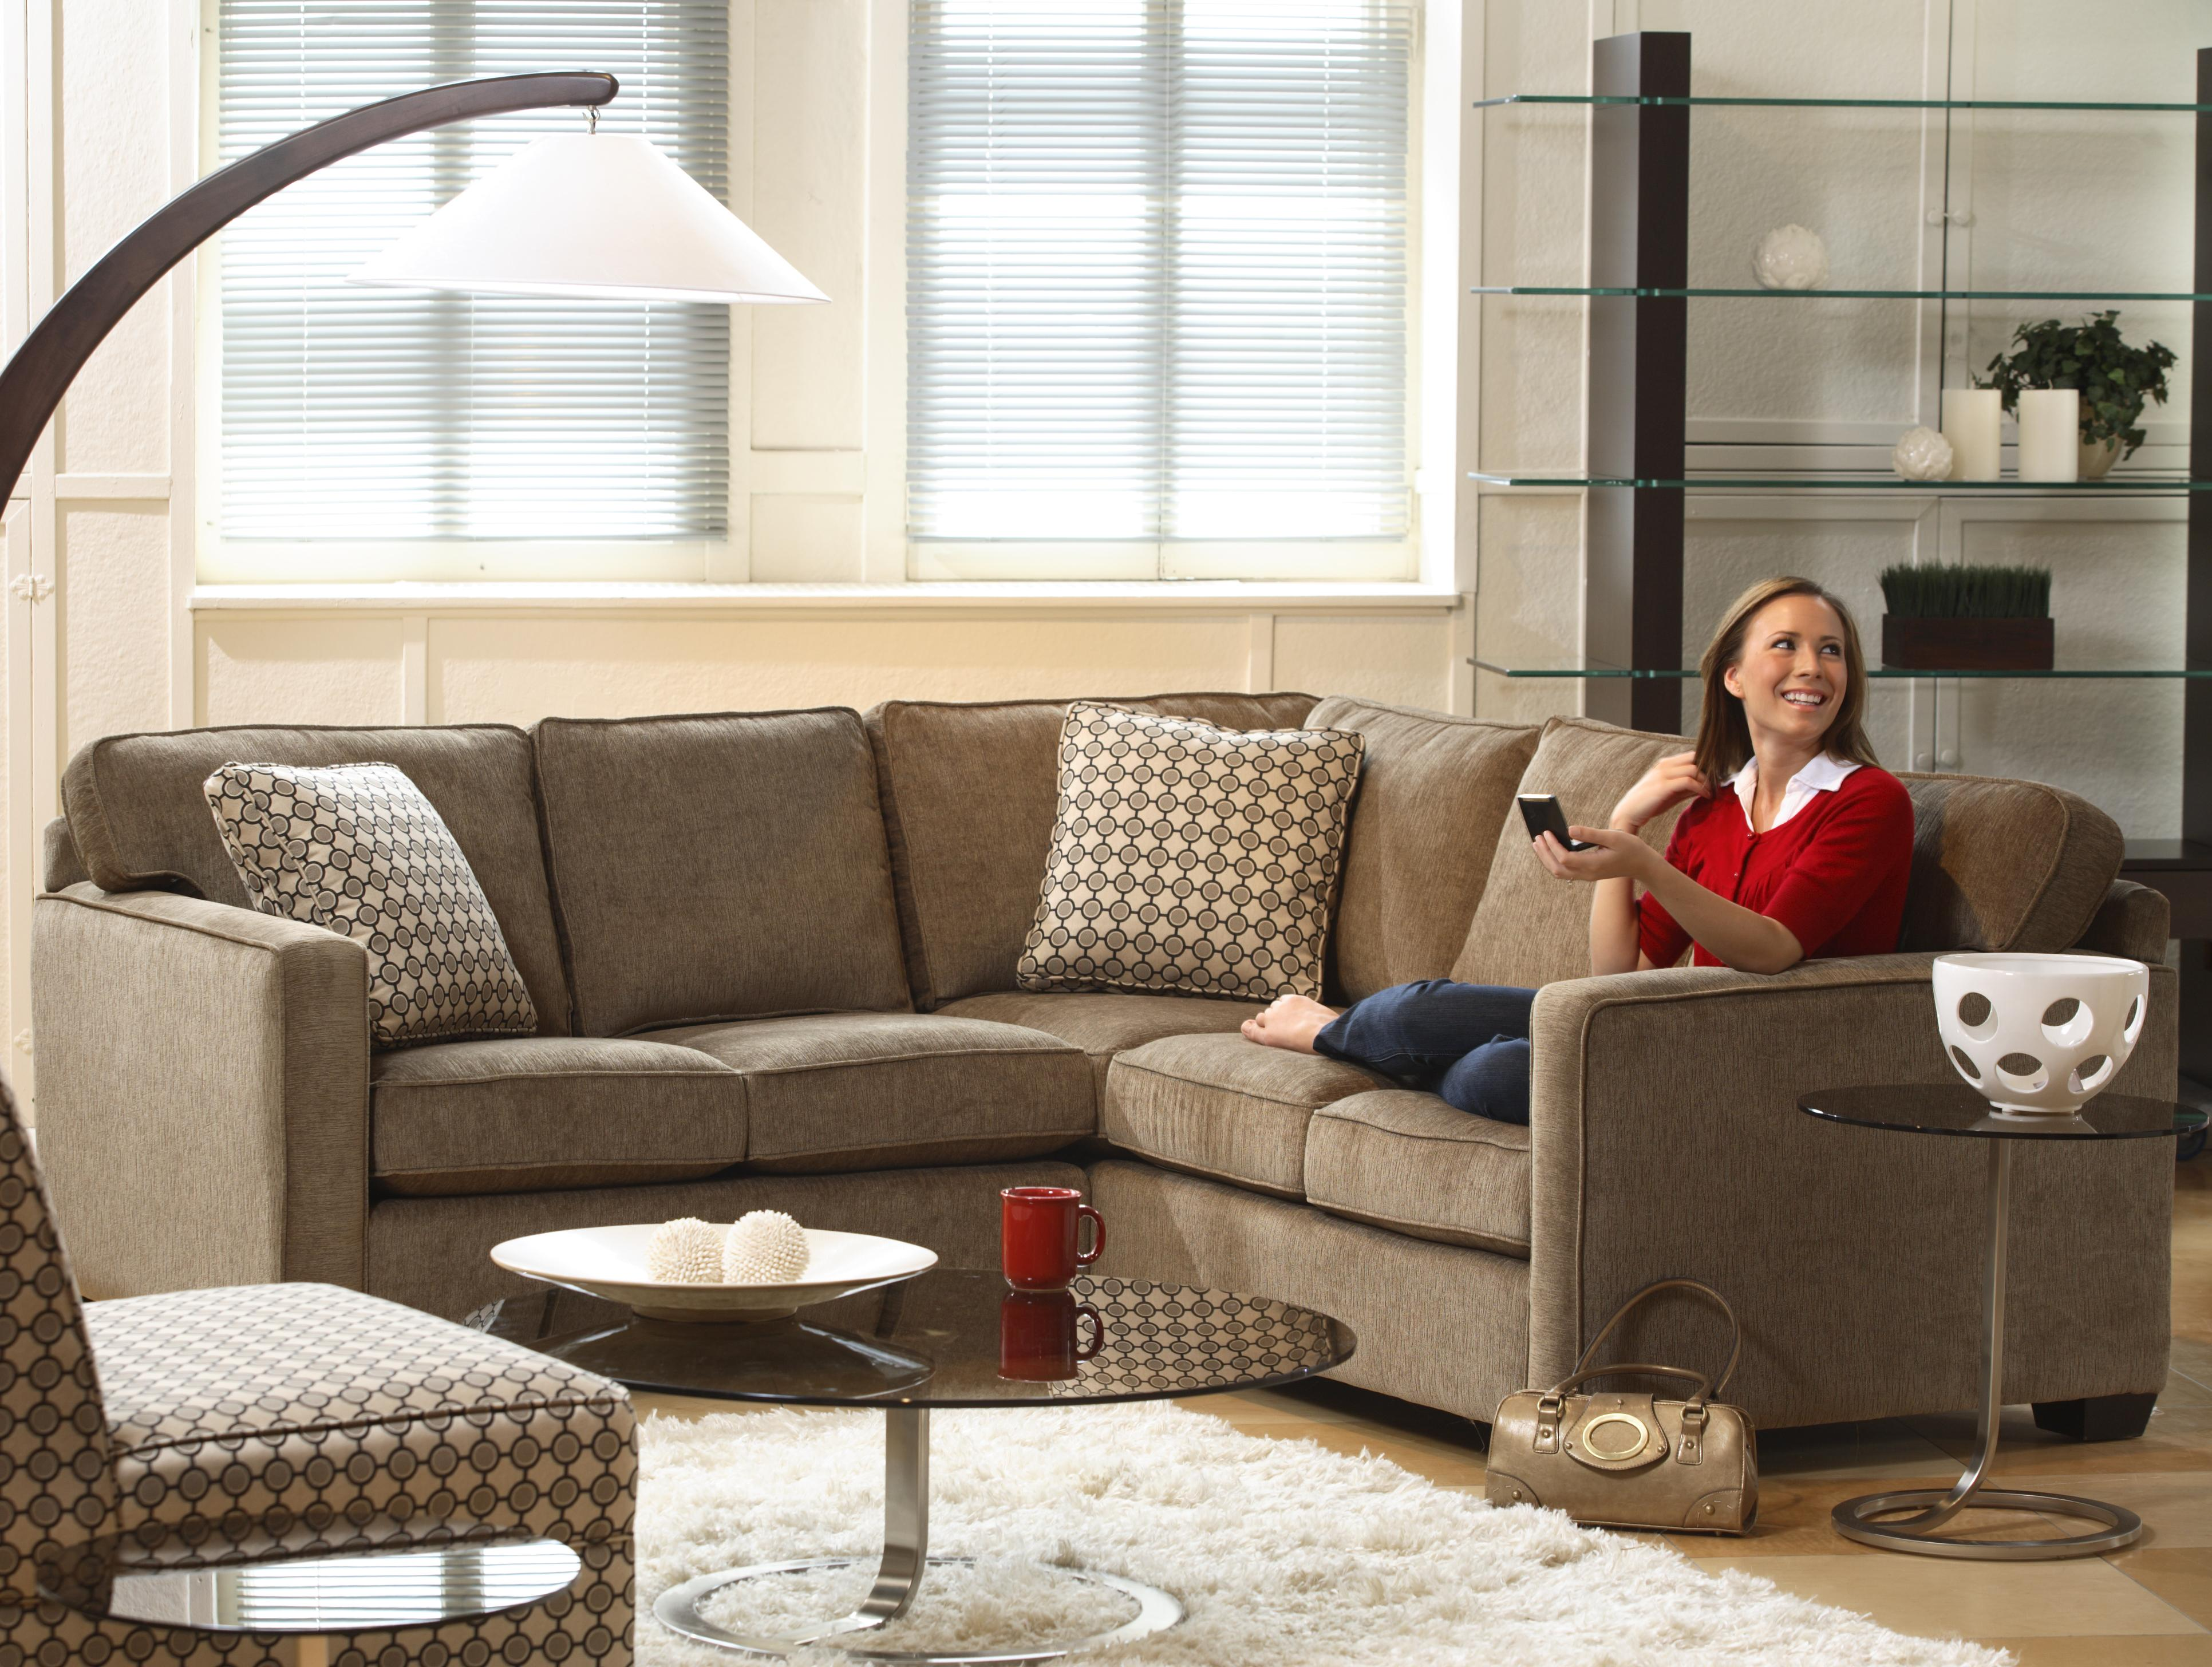 Stylus 5901 Five Seat Sectional Sofa